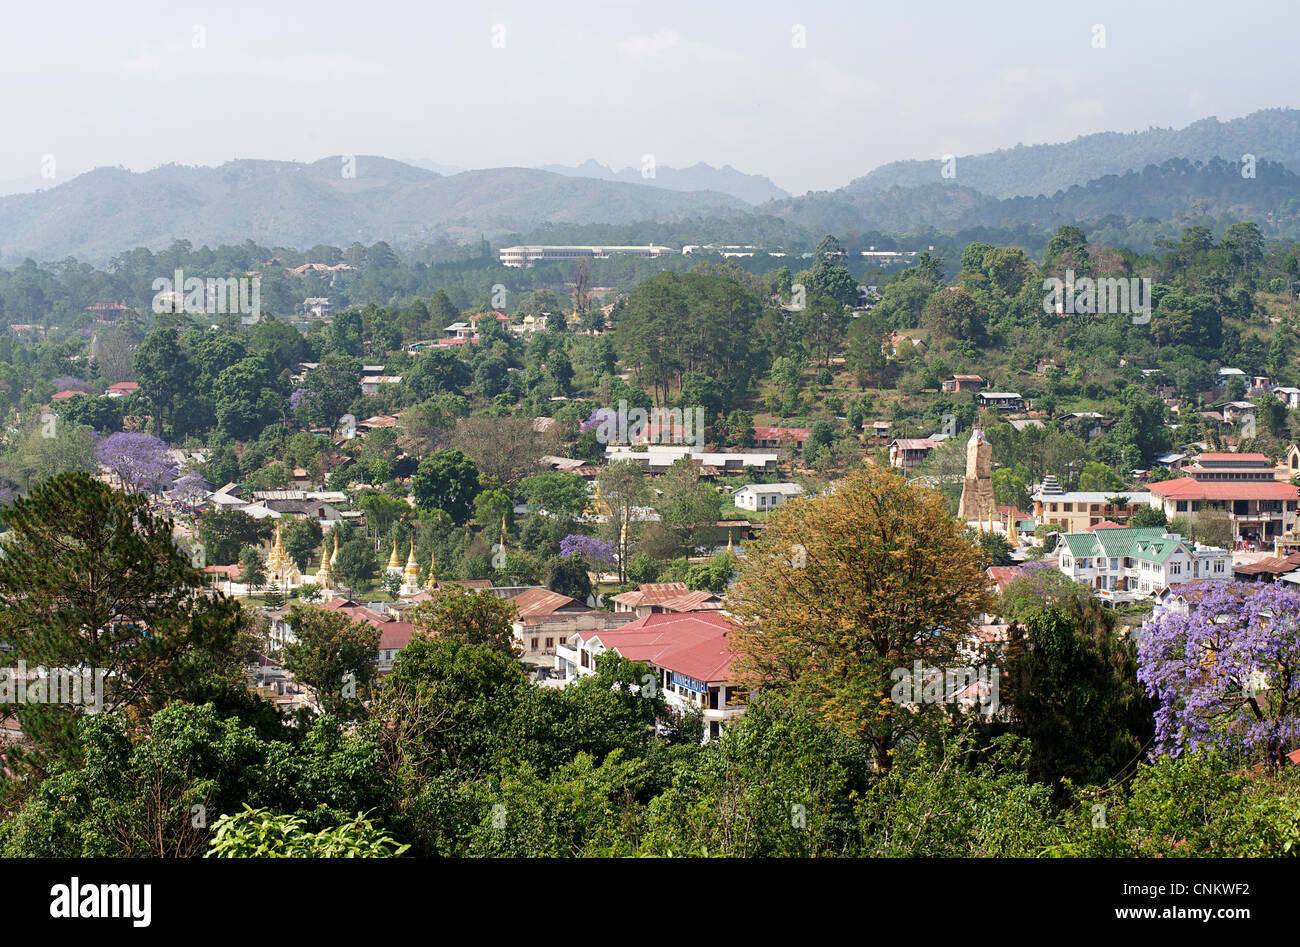 View of Kalaw, Burma. Myanmar Stock Photo